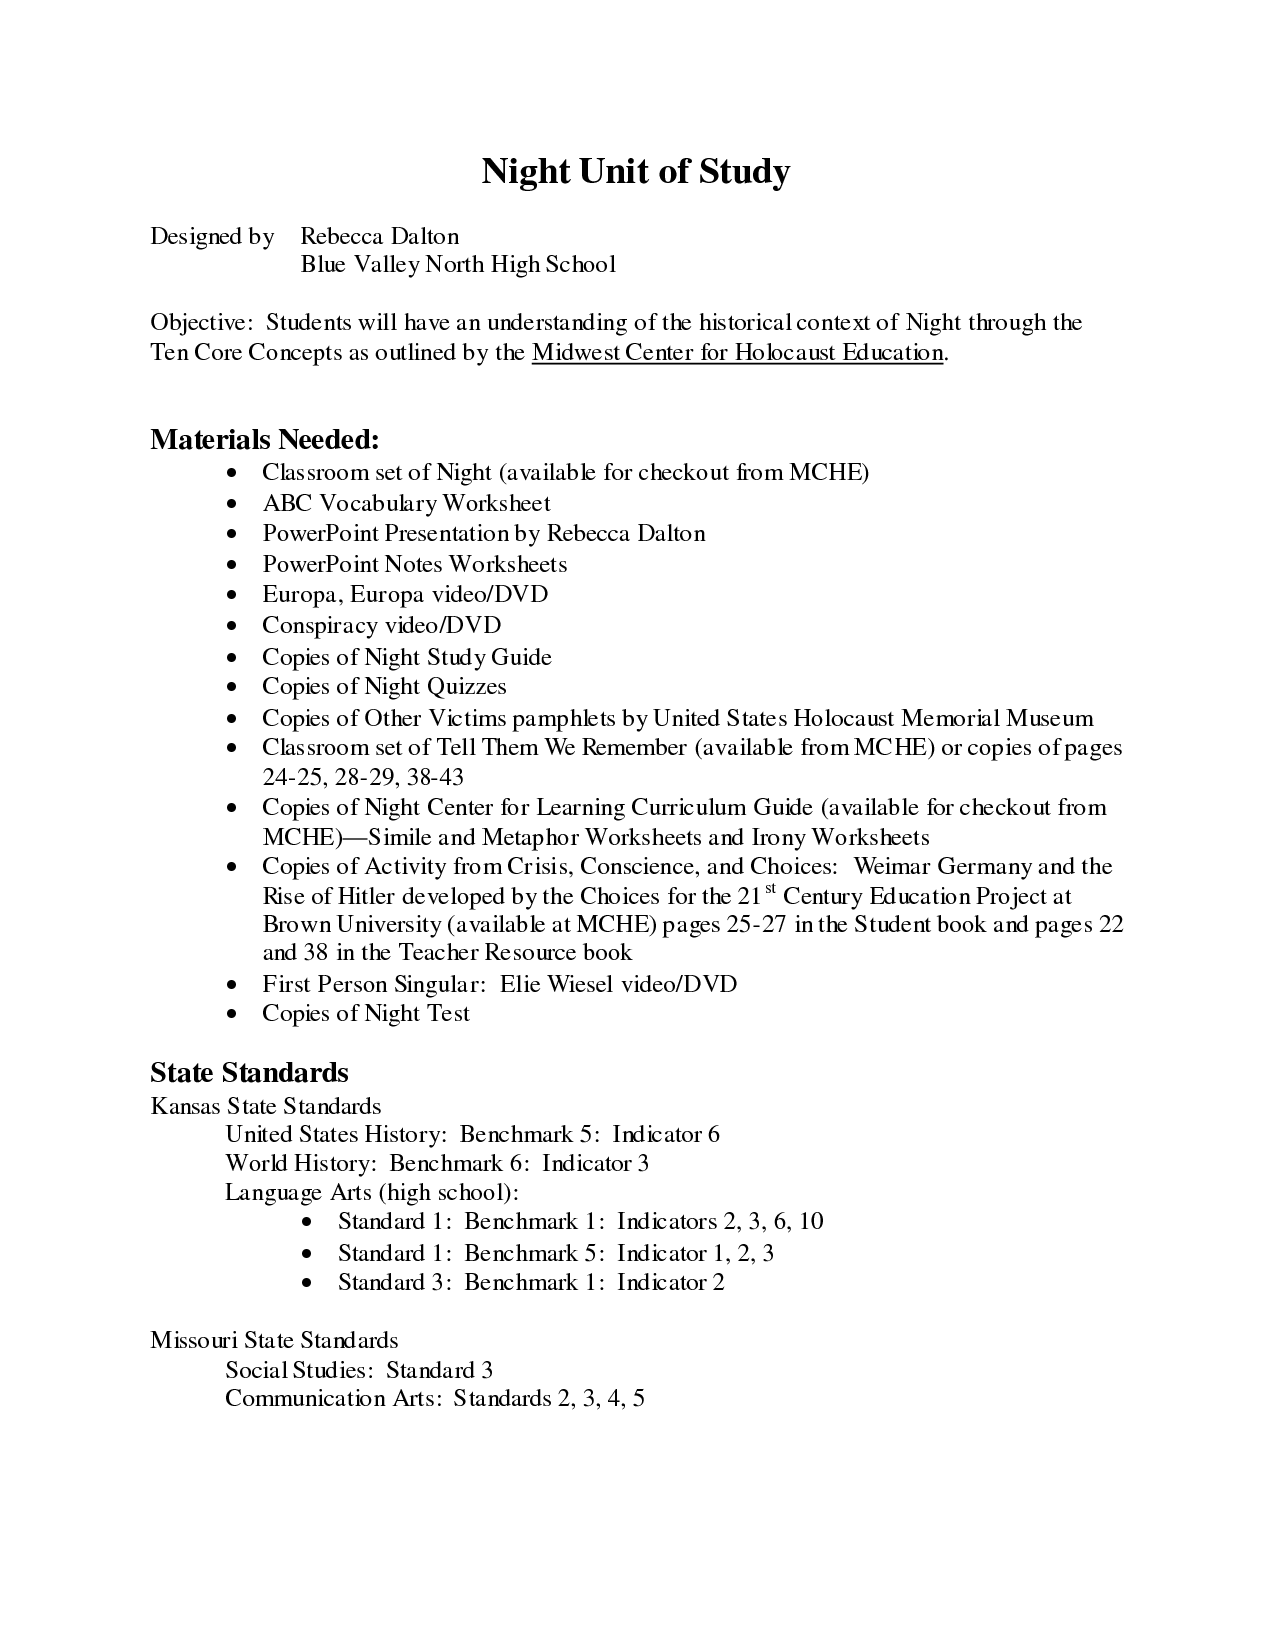 Science Assignments For High School